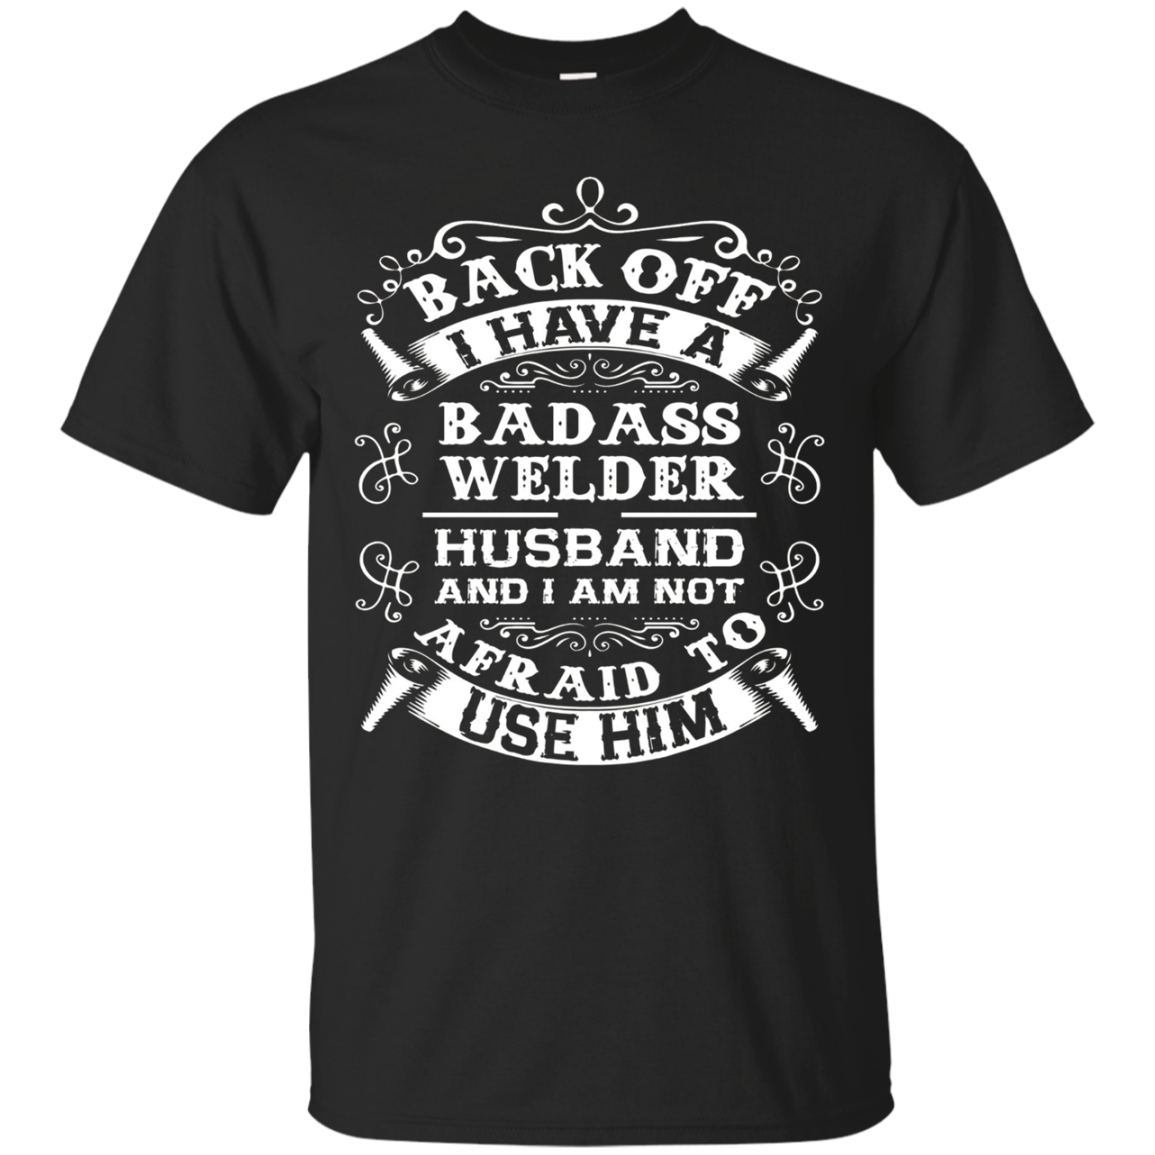 Back Off I Have A Badass Welder Husband T-shirt Wife Gifts